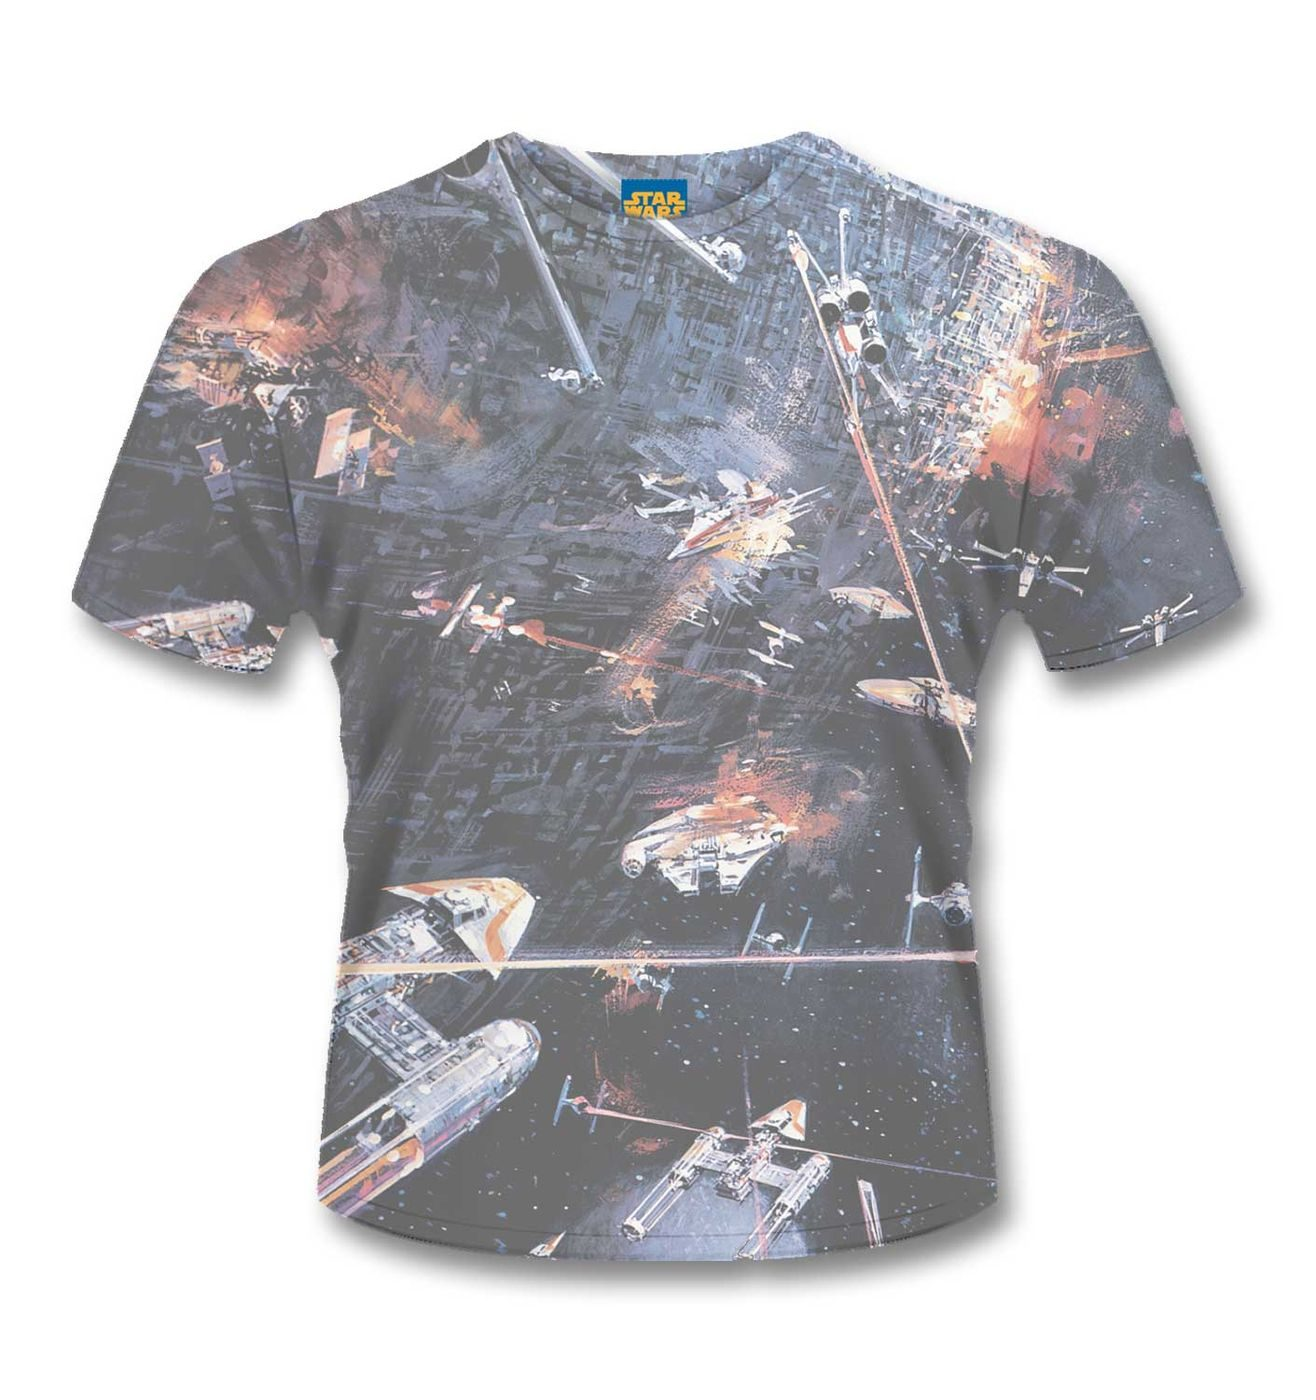 Huge Space Battle Subdye t-shirt - Official Star Wars tshirt